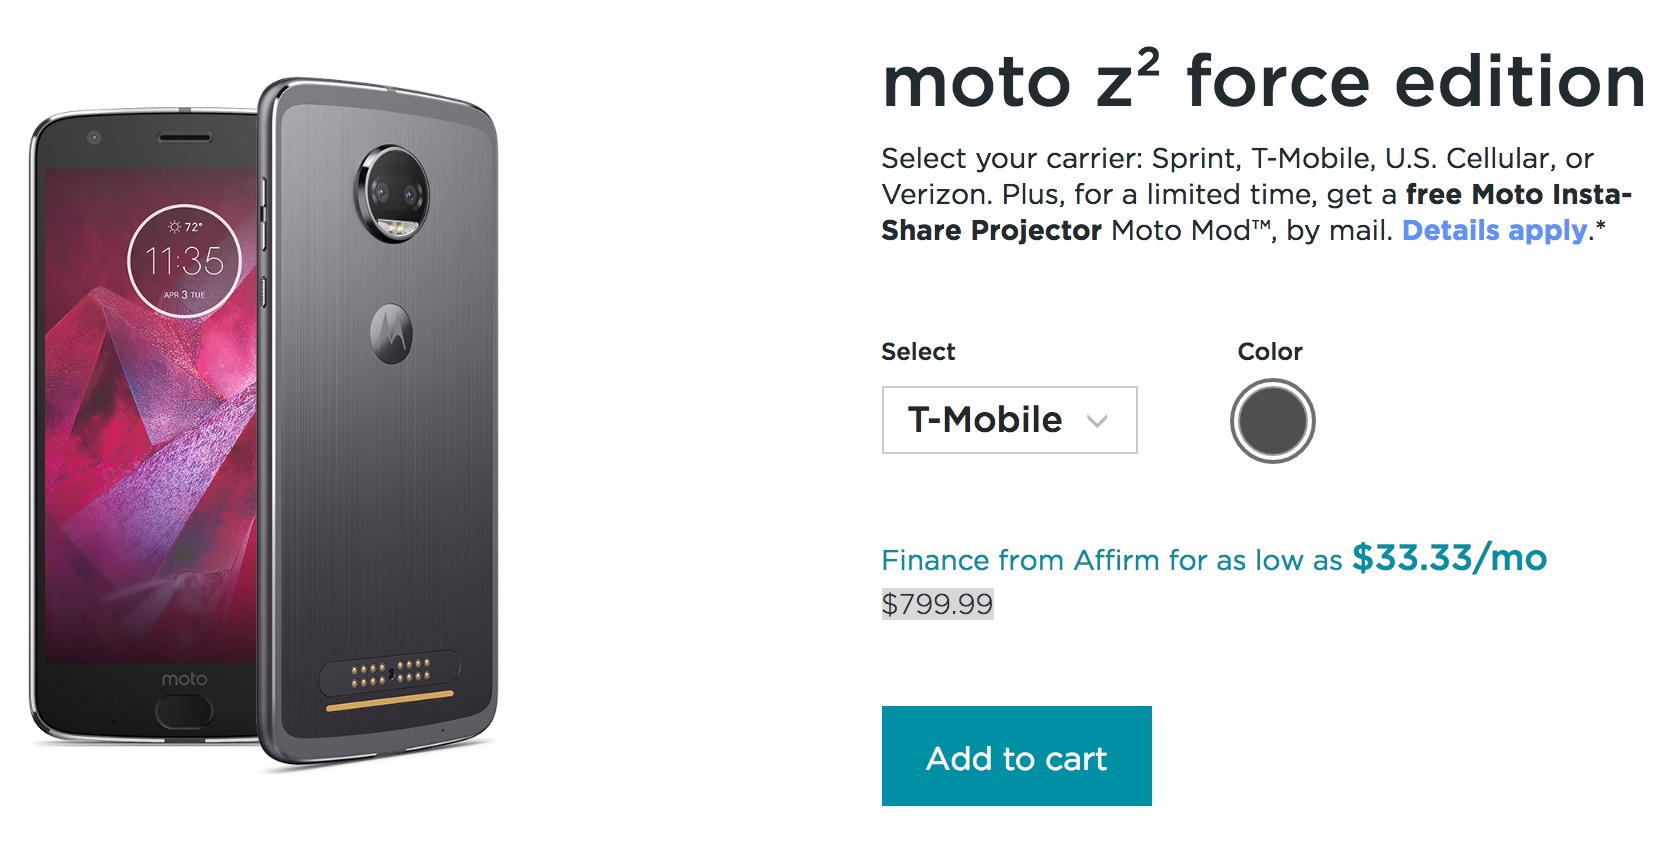 Moto Z2 Force Edition and new Moto 360 Camera Moto Mod announced